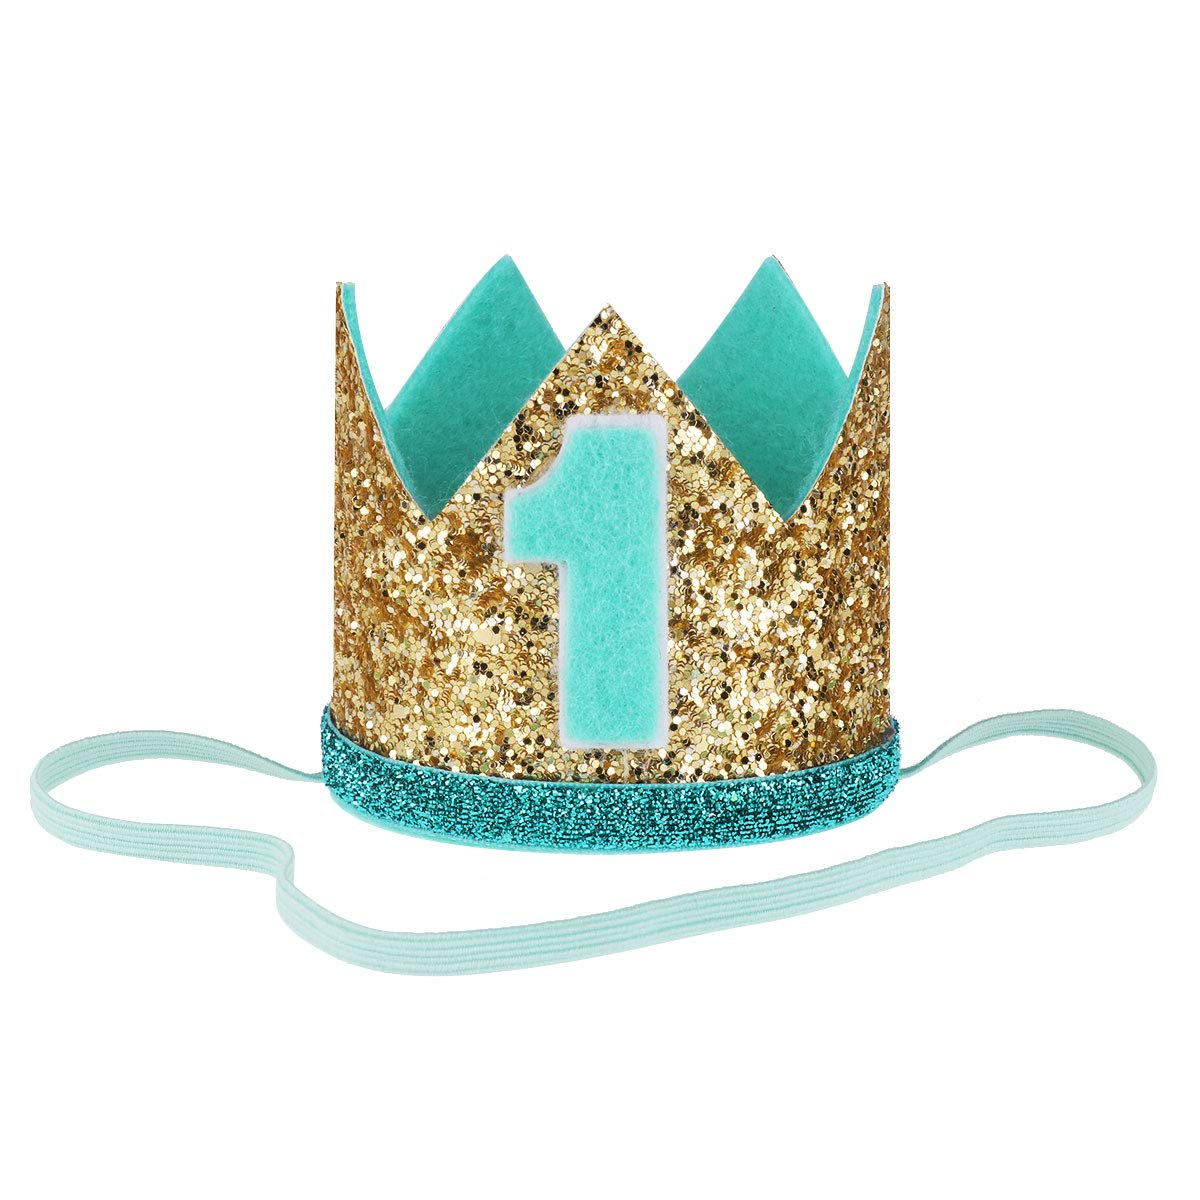 CHICTRY Baby 1st/2nd Birthday Hat Sparkly Prince Party Crown Tiara Headbands Photography Props Gold&Mint One Size